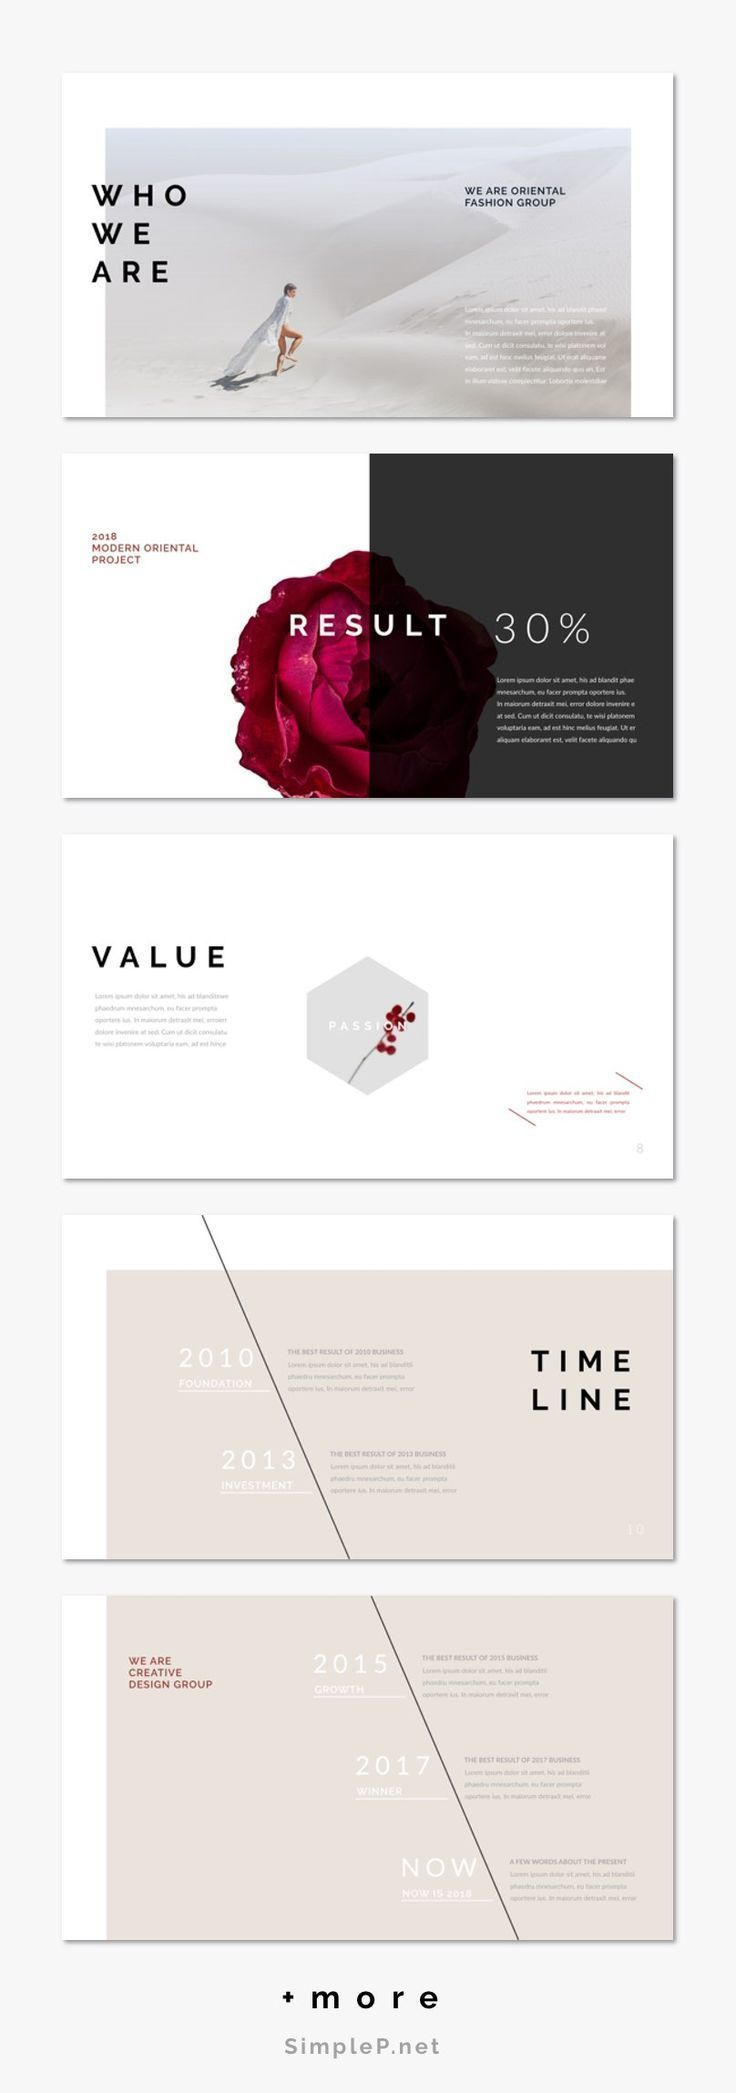 Fashion Business Powerpoint Presentation Template #oriental #layout #fashion #proposal #portfolio #freereadingincsites